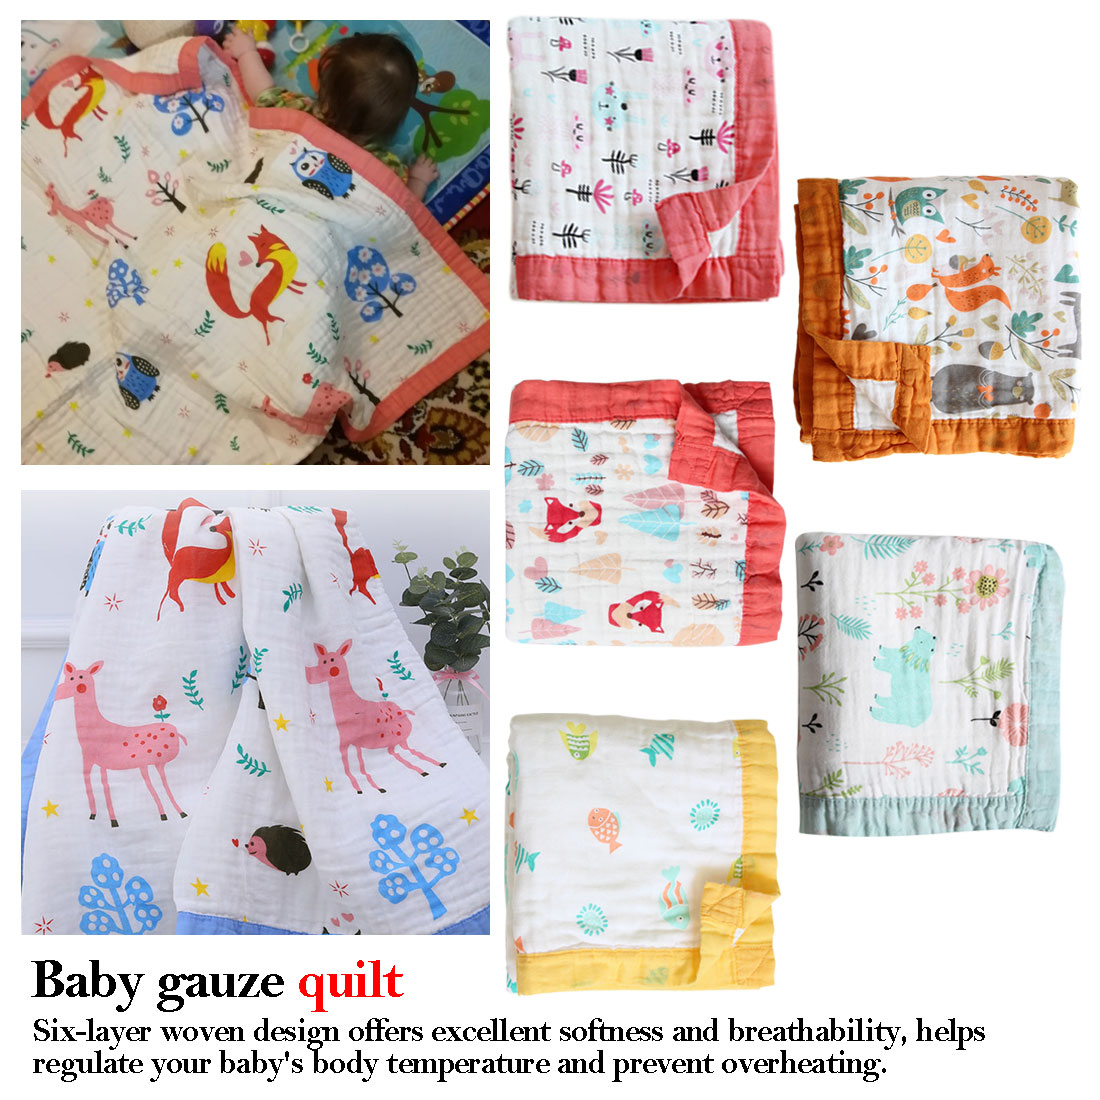 110*110cm Cotton Baby Muslin Swaddle Blanket Newborn Baby Bed Cover Receiving Blanket 6 Layers Infant Kids Cotton Muslin Blanket